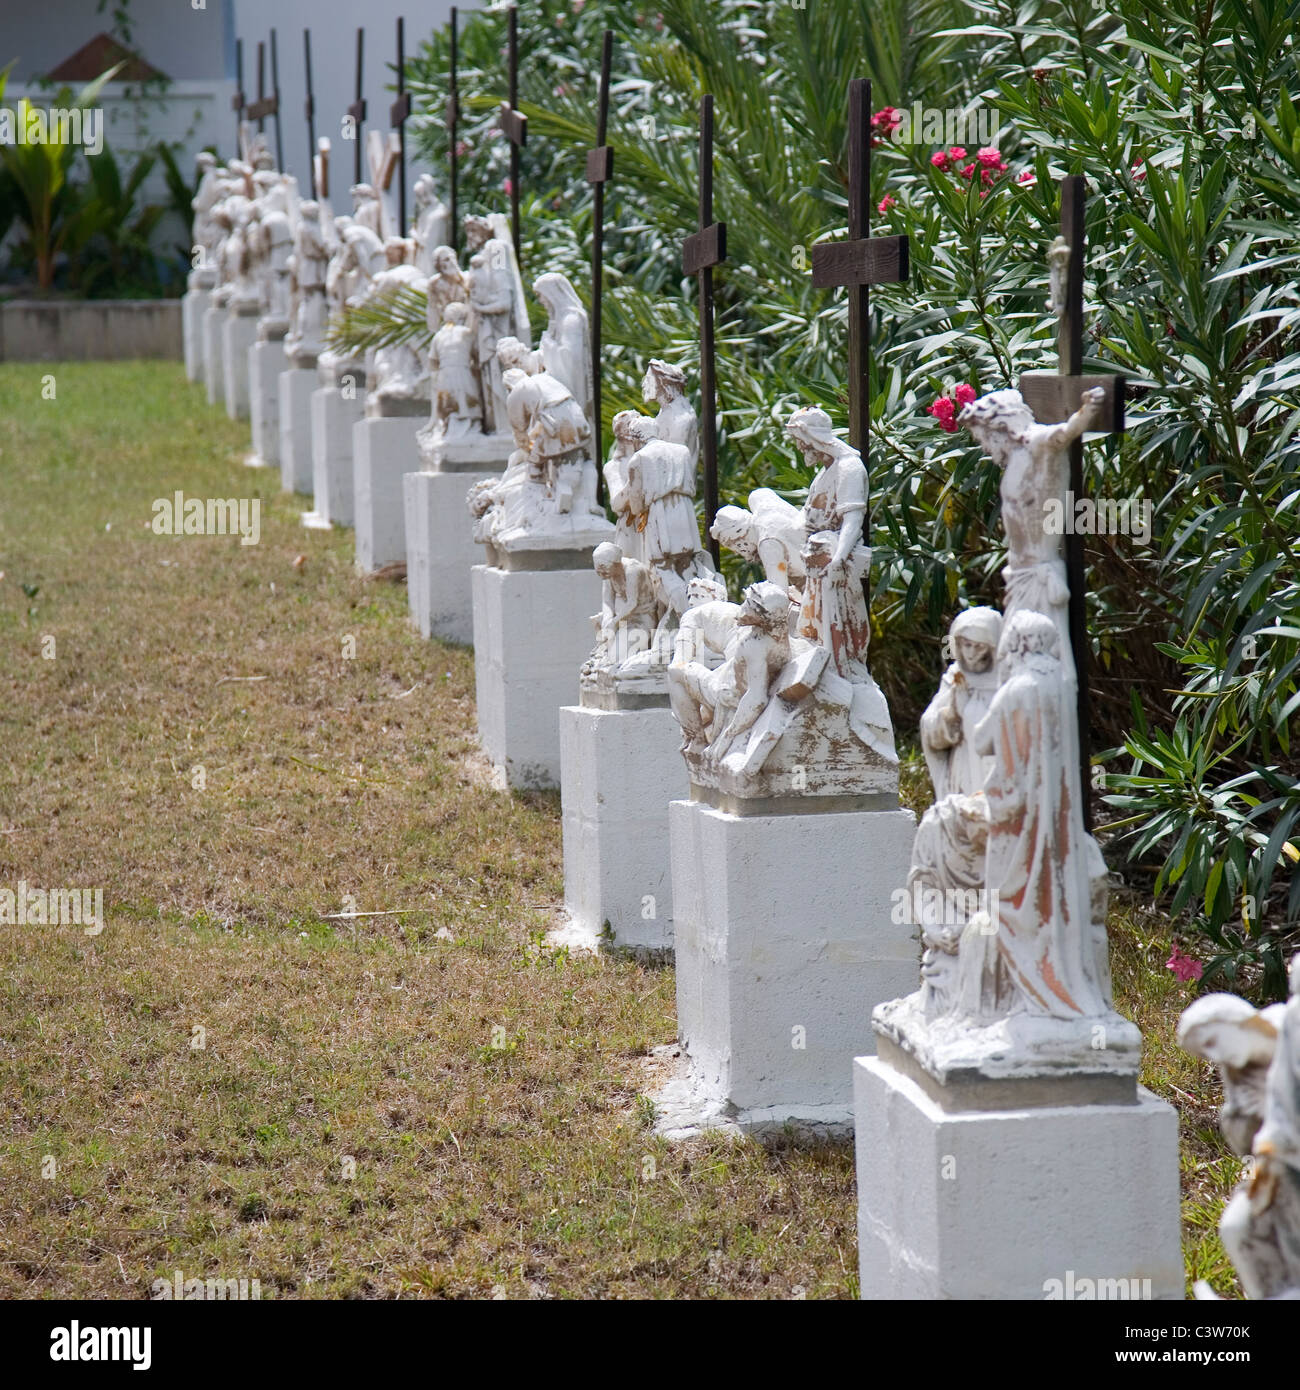 'Our Lady Of Perpetual Help' Statues on Grounds - Stock Image